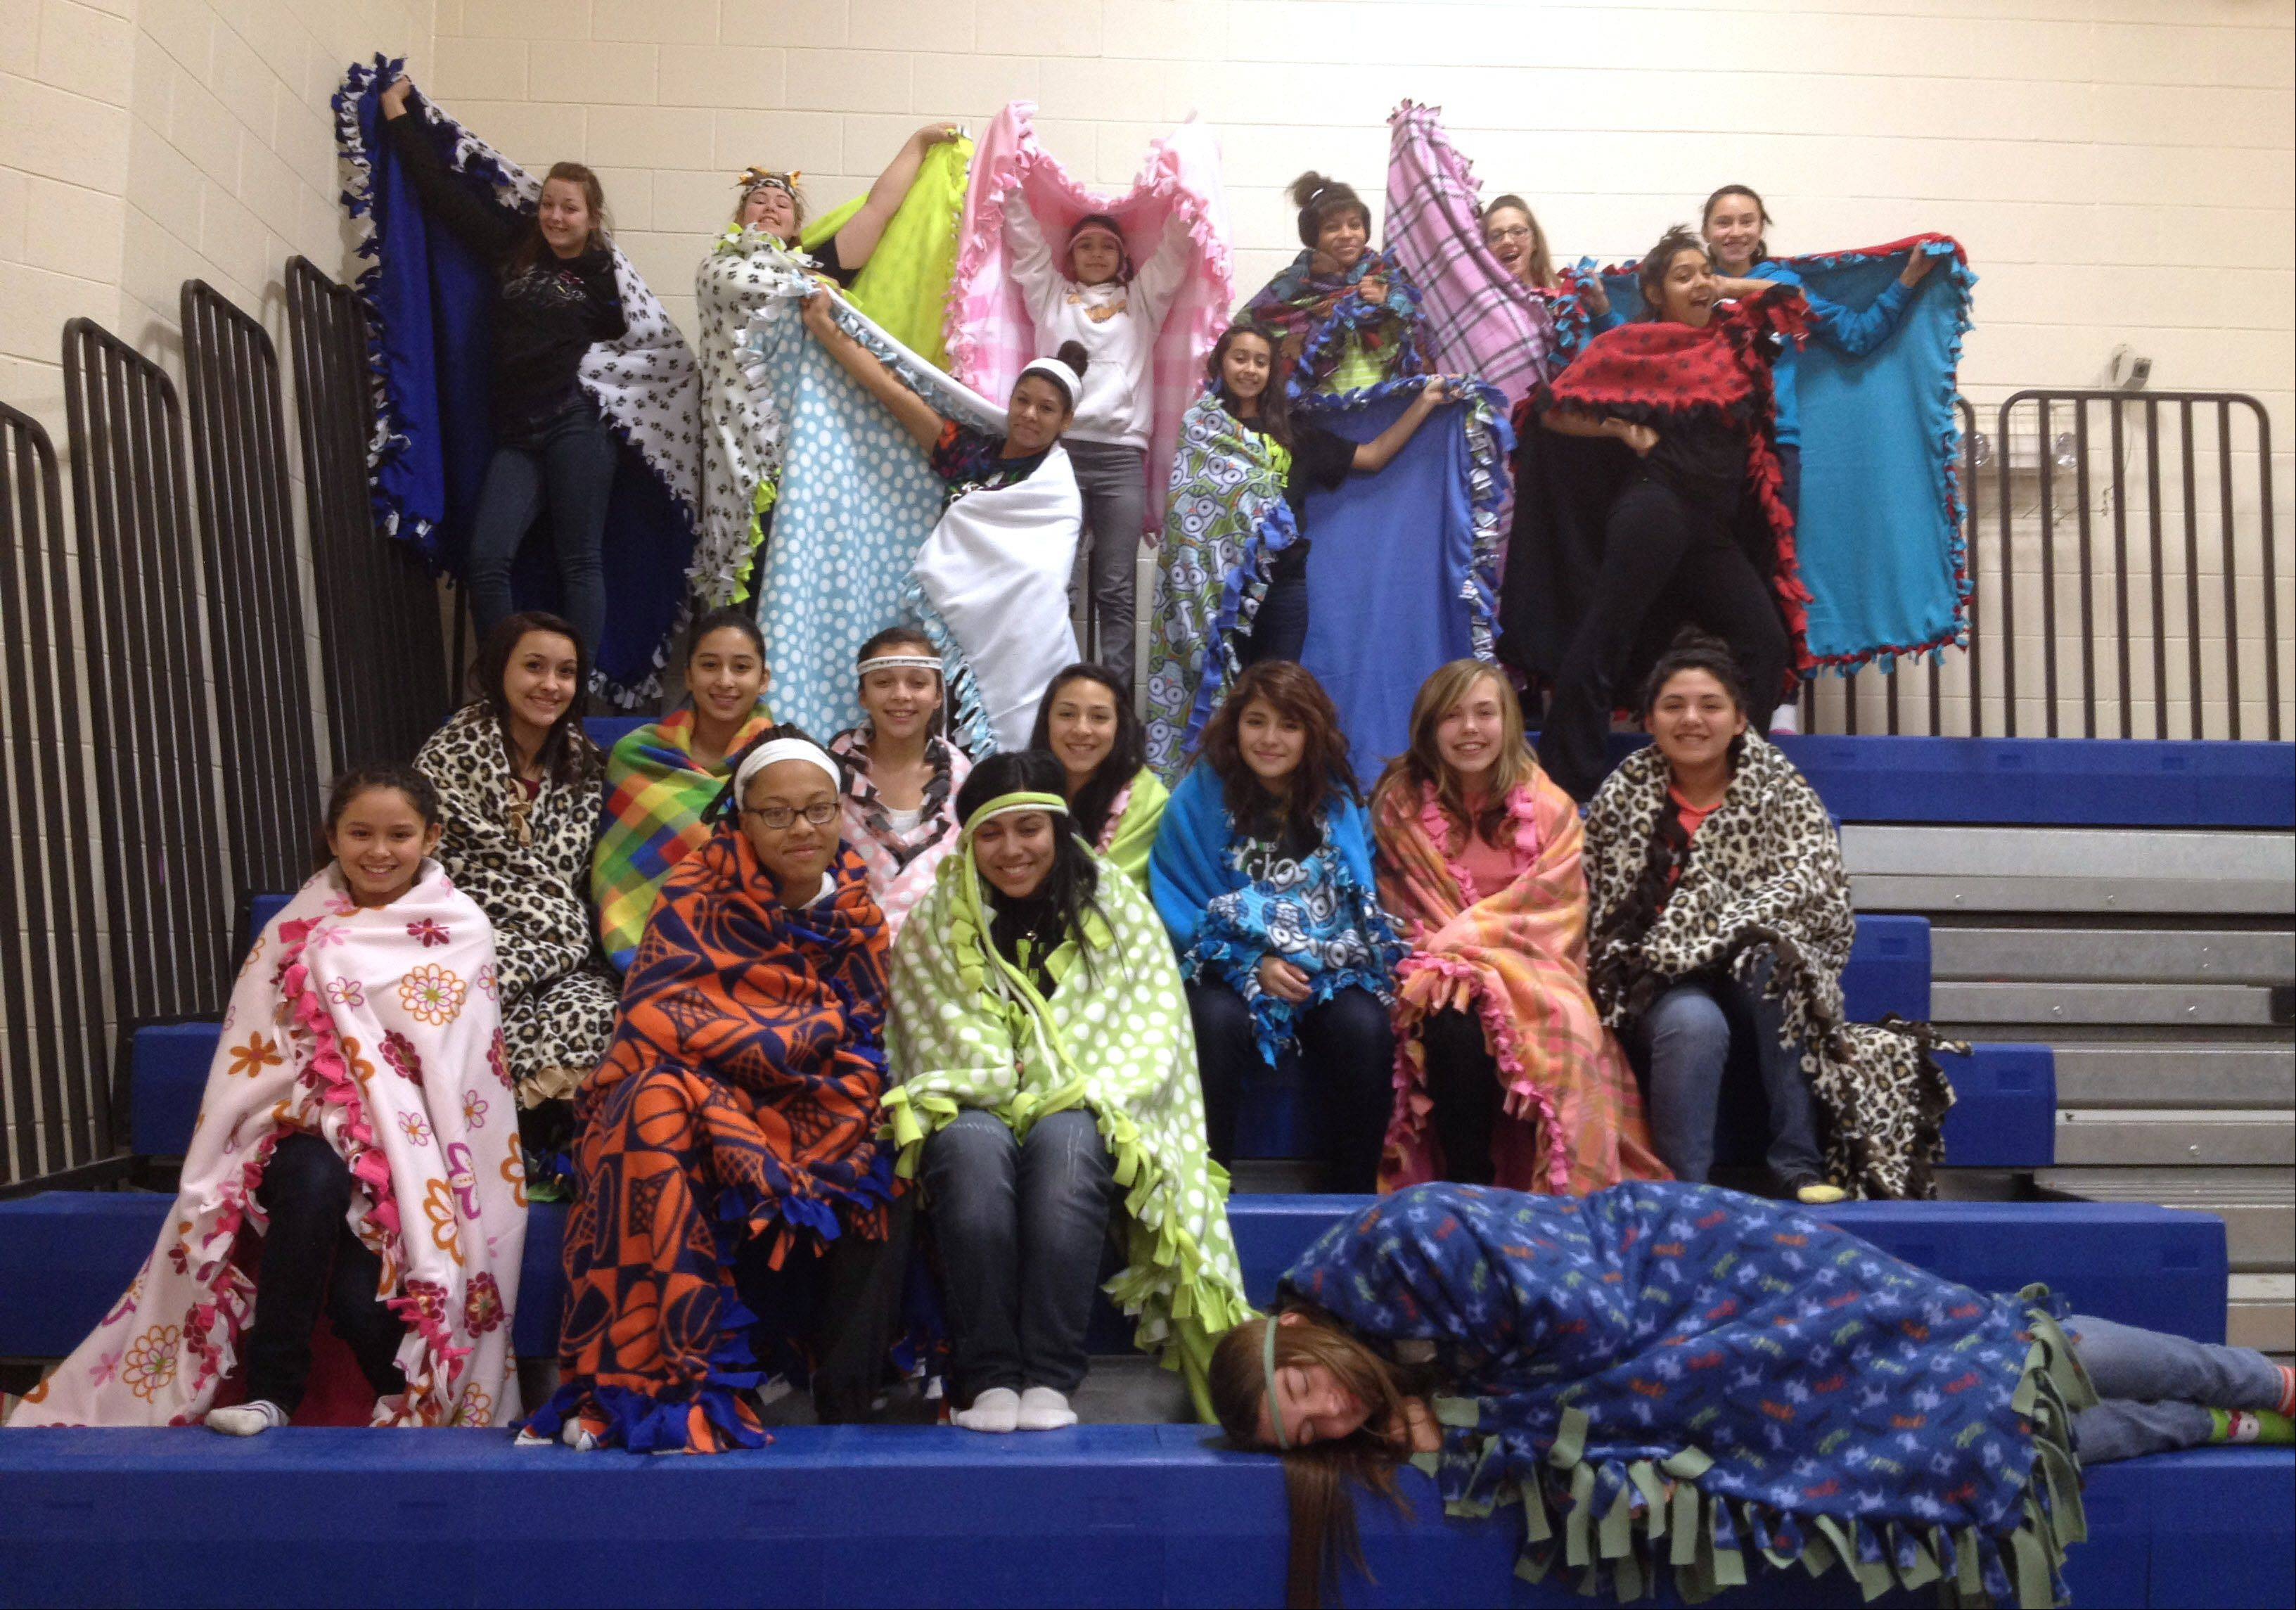 The Wildcat cheerleaders at Round Lake Middle School made fleece blankets that they donated to the Staben Center and Staben House, both in Waukegan.